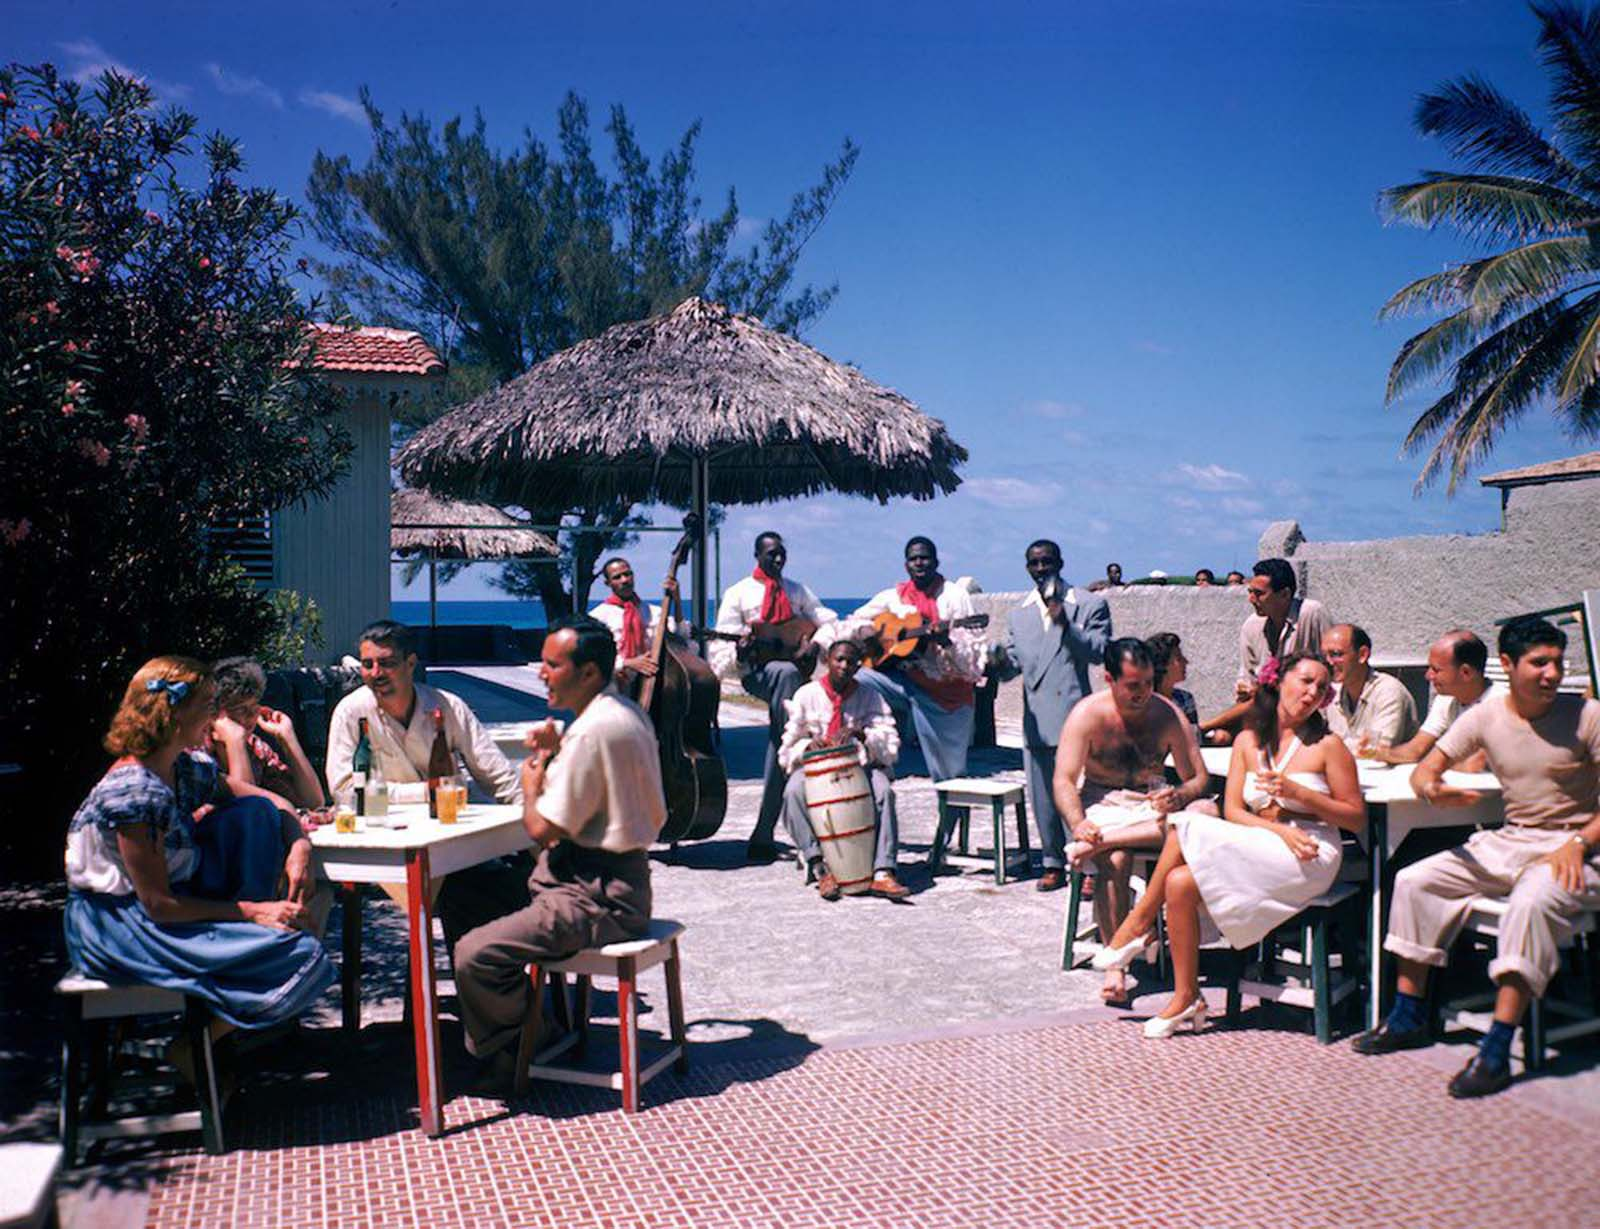 Guests sit at outdoor tables in the Kastillito Club and talk together while a band performs in Varadero, Cuba. 1946.